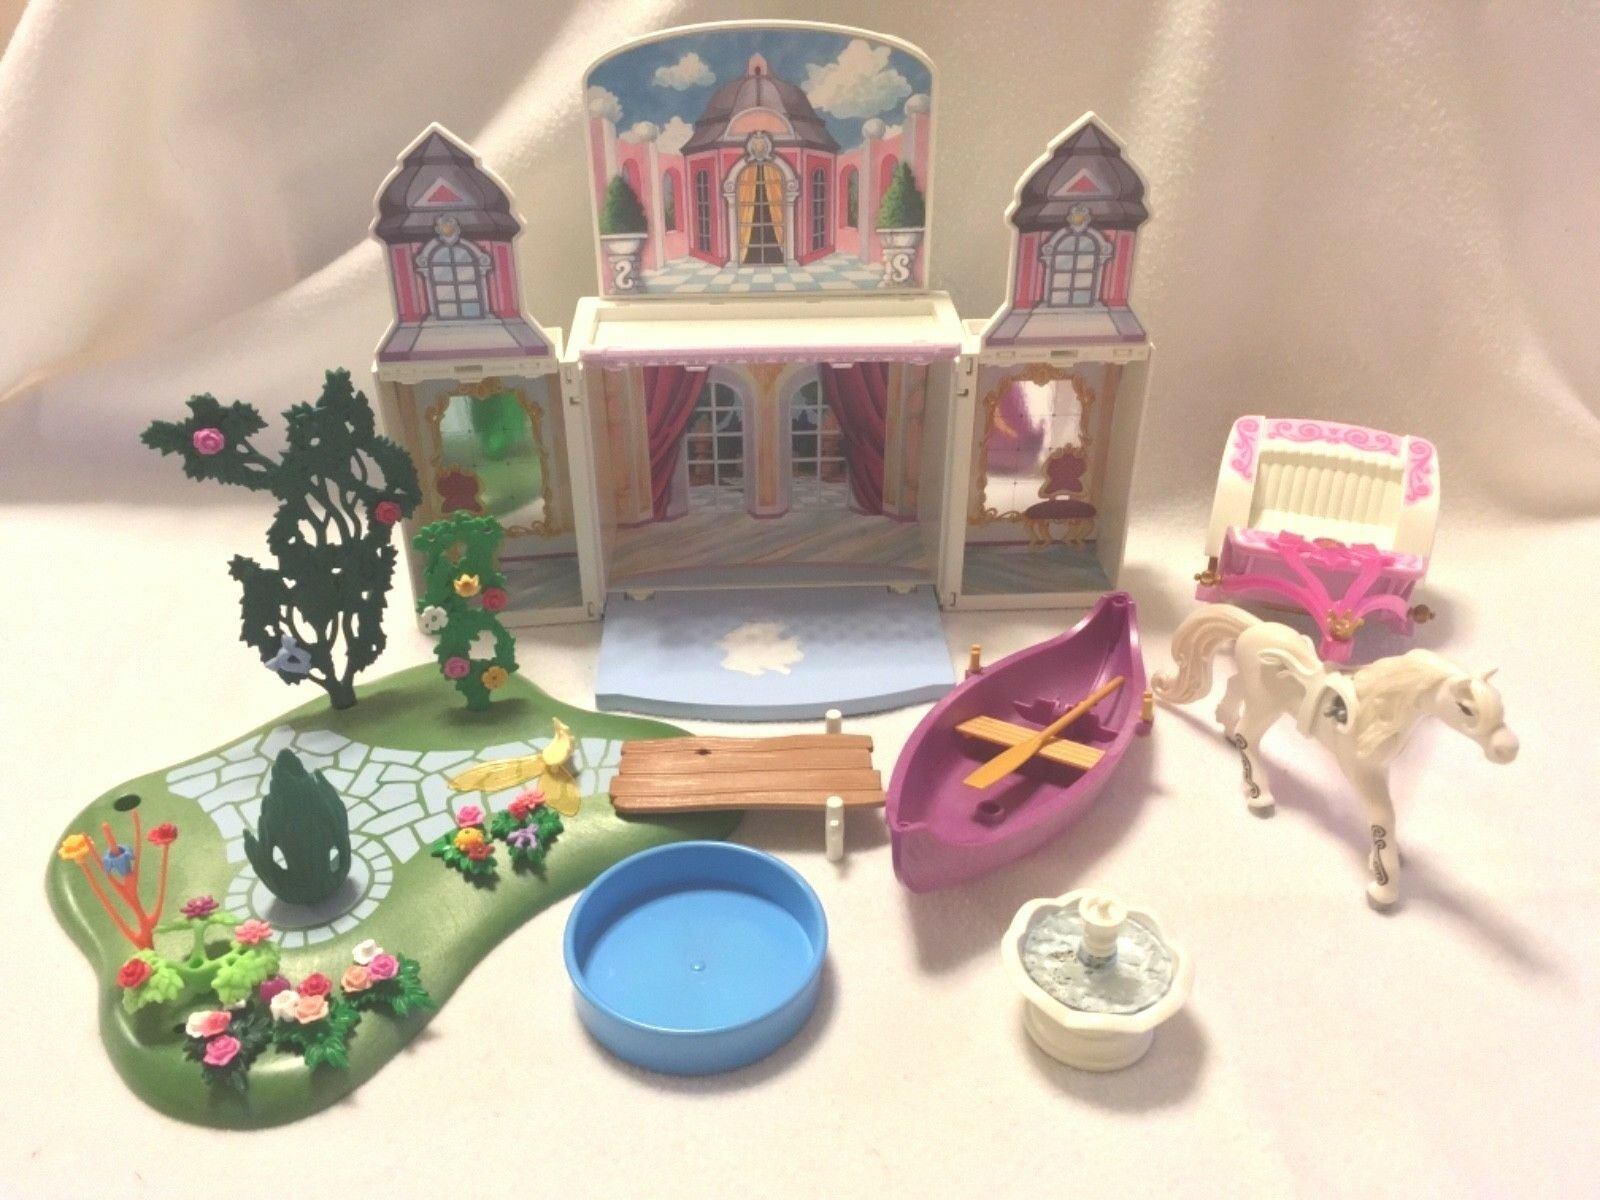 155 Items Playmobil Lot - Princess Castle Castle Castle Royal Fantasy Boat Fountain Unicorn 2a7840